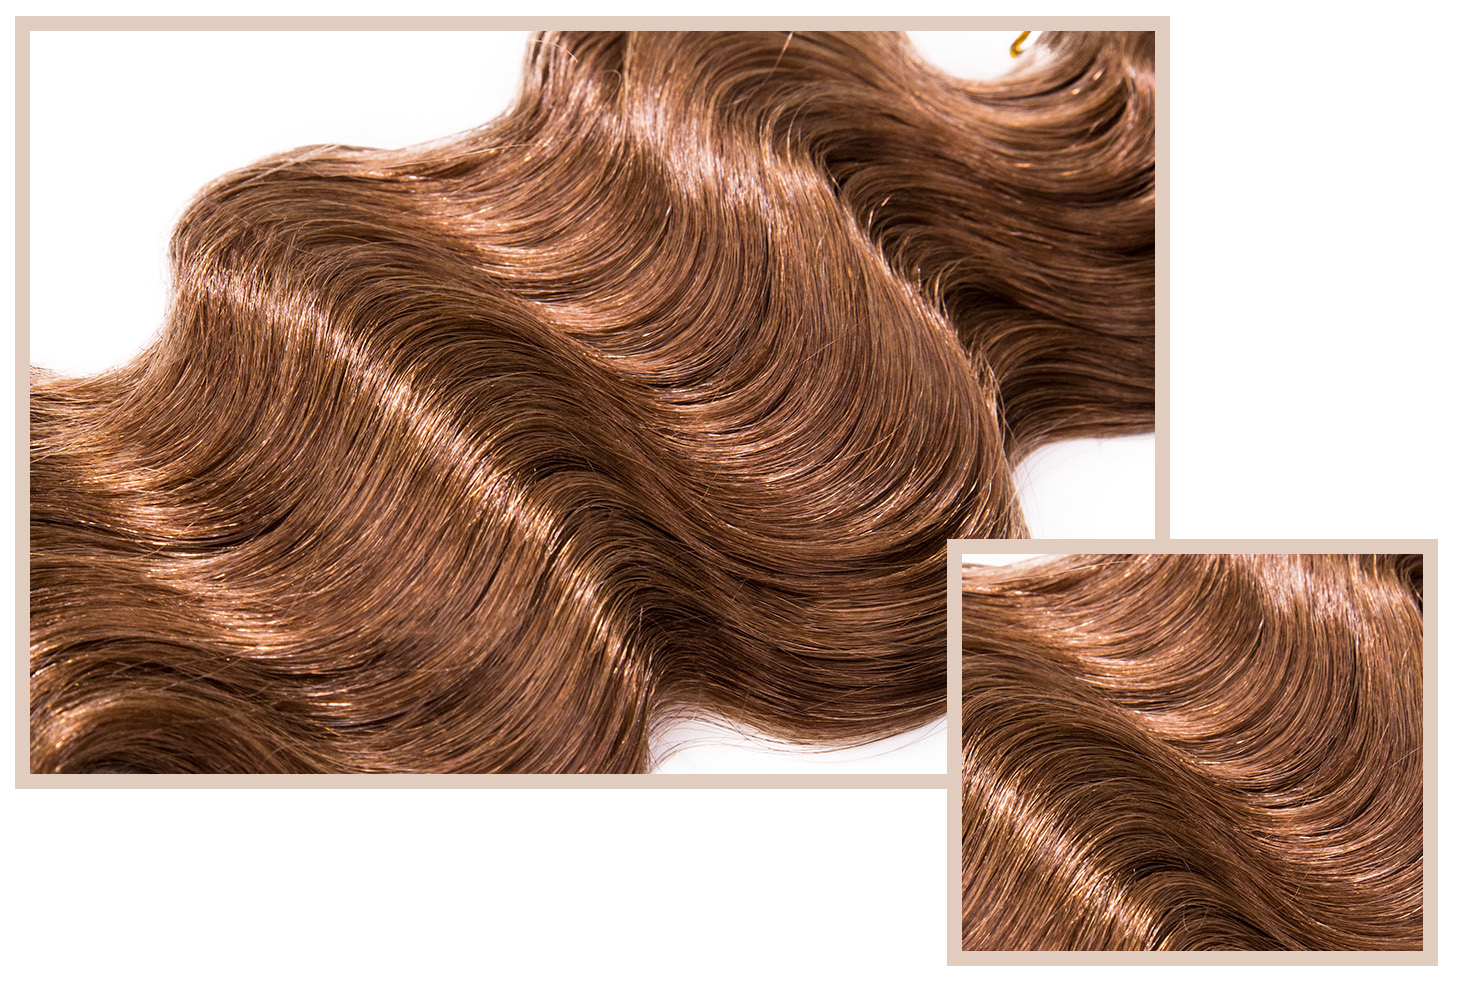 OCEAN BREEZE - Available in Classic, LuxeSmooth texture, with strong sharp curls that break up into rippling waves. Slightly coarser than the French Body, this hair can be styled to have long lasting beach waves.